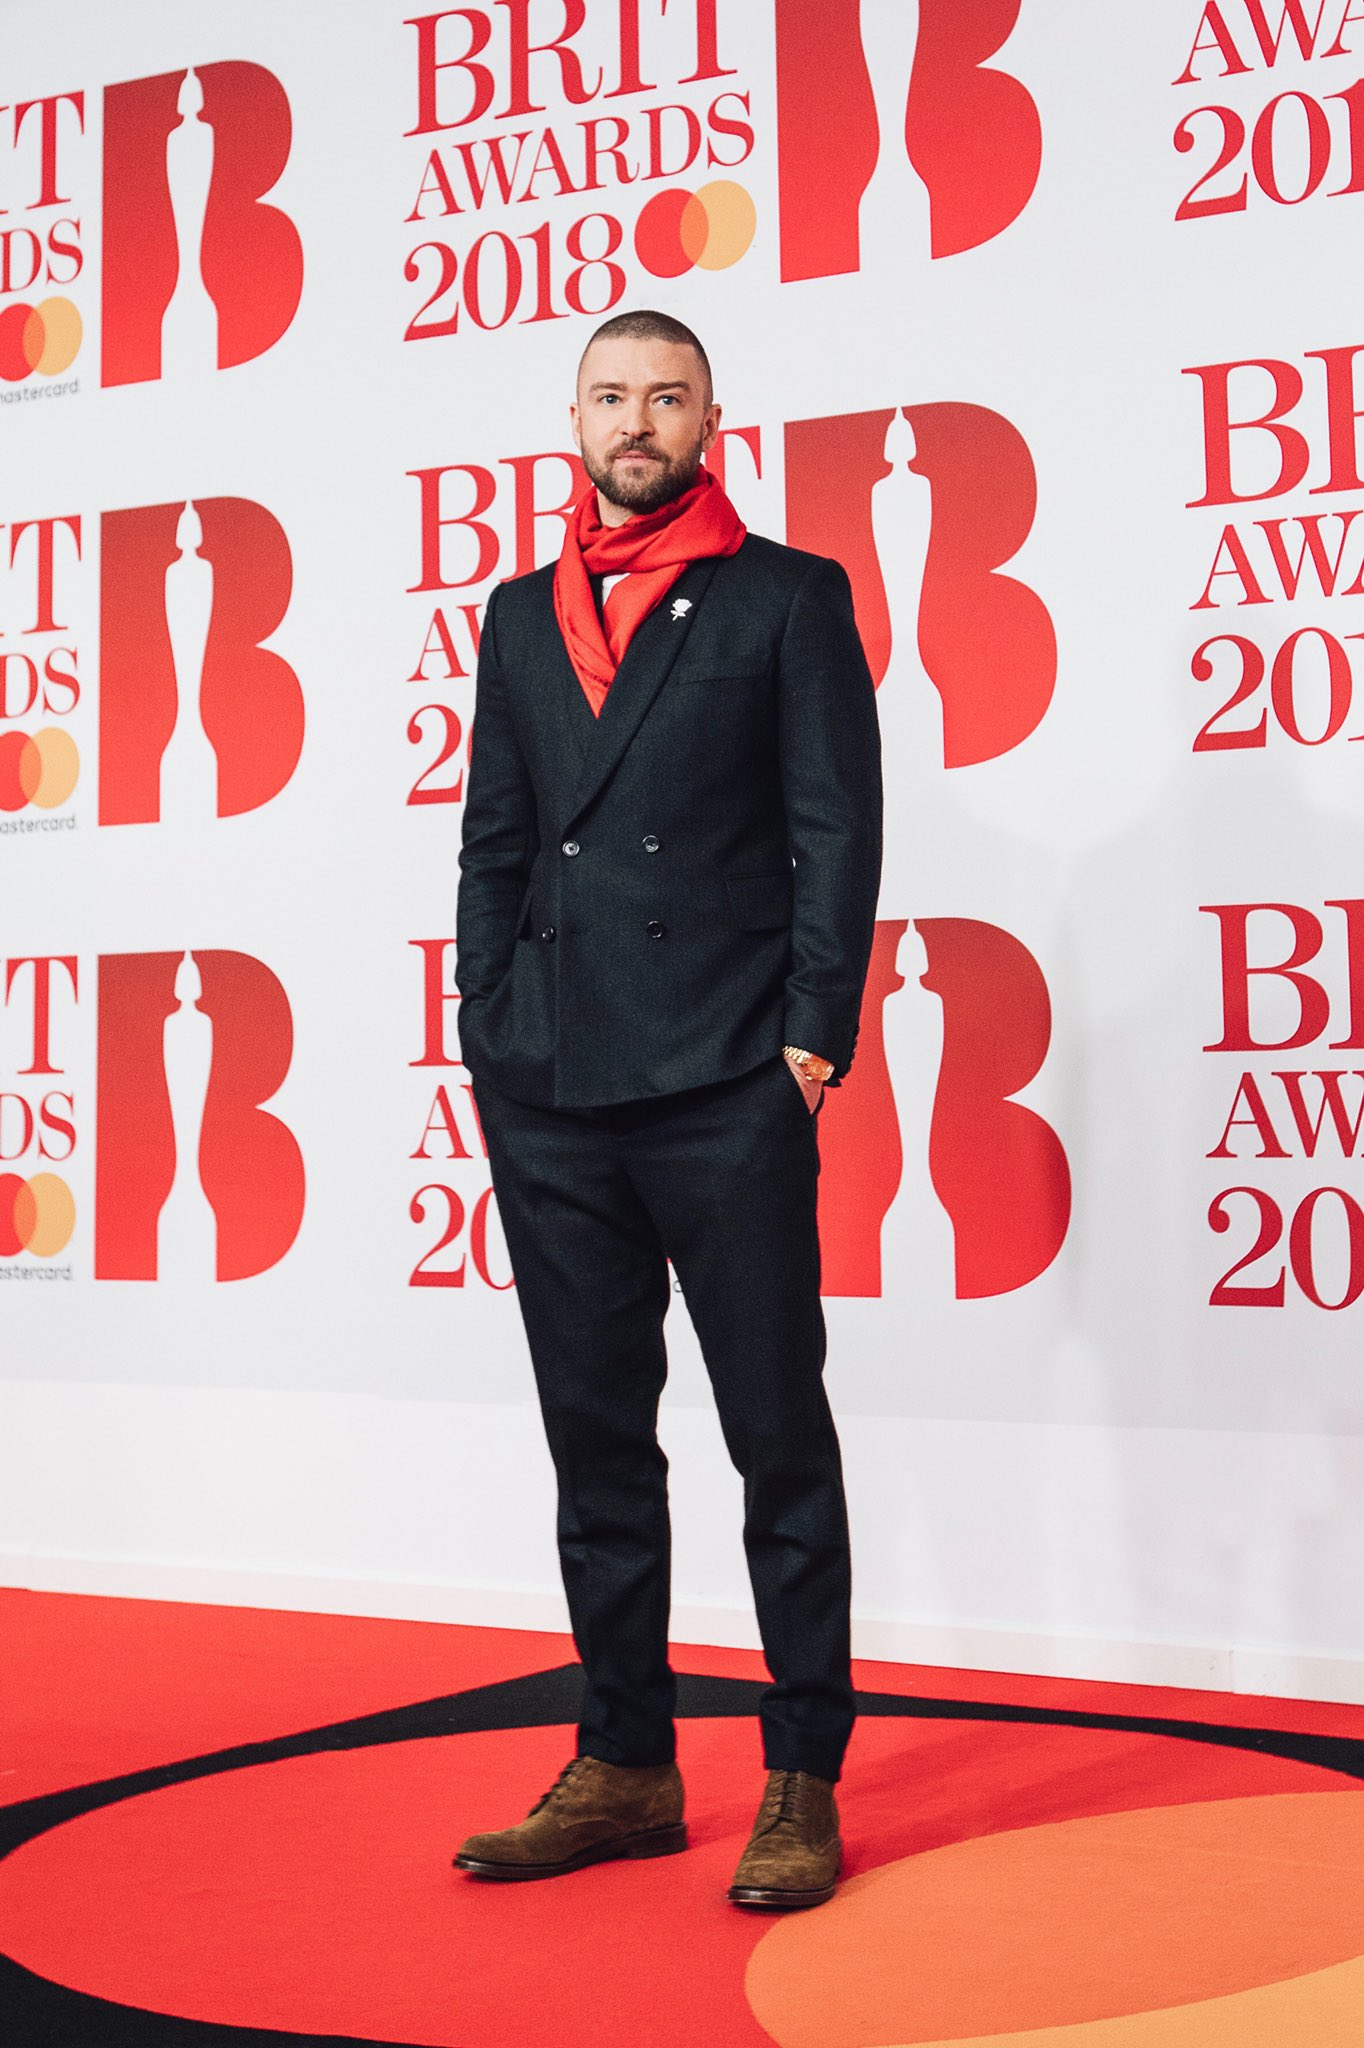 Excited to be here... #BritAwards https://t.co/14lxTTdbX9